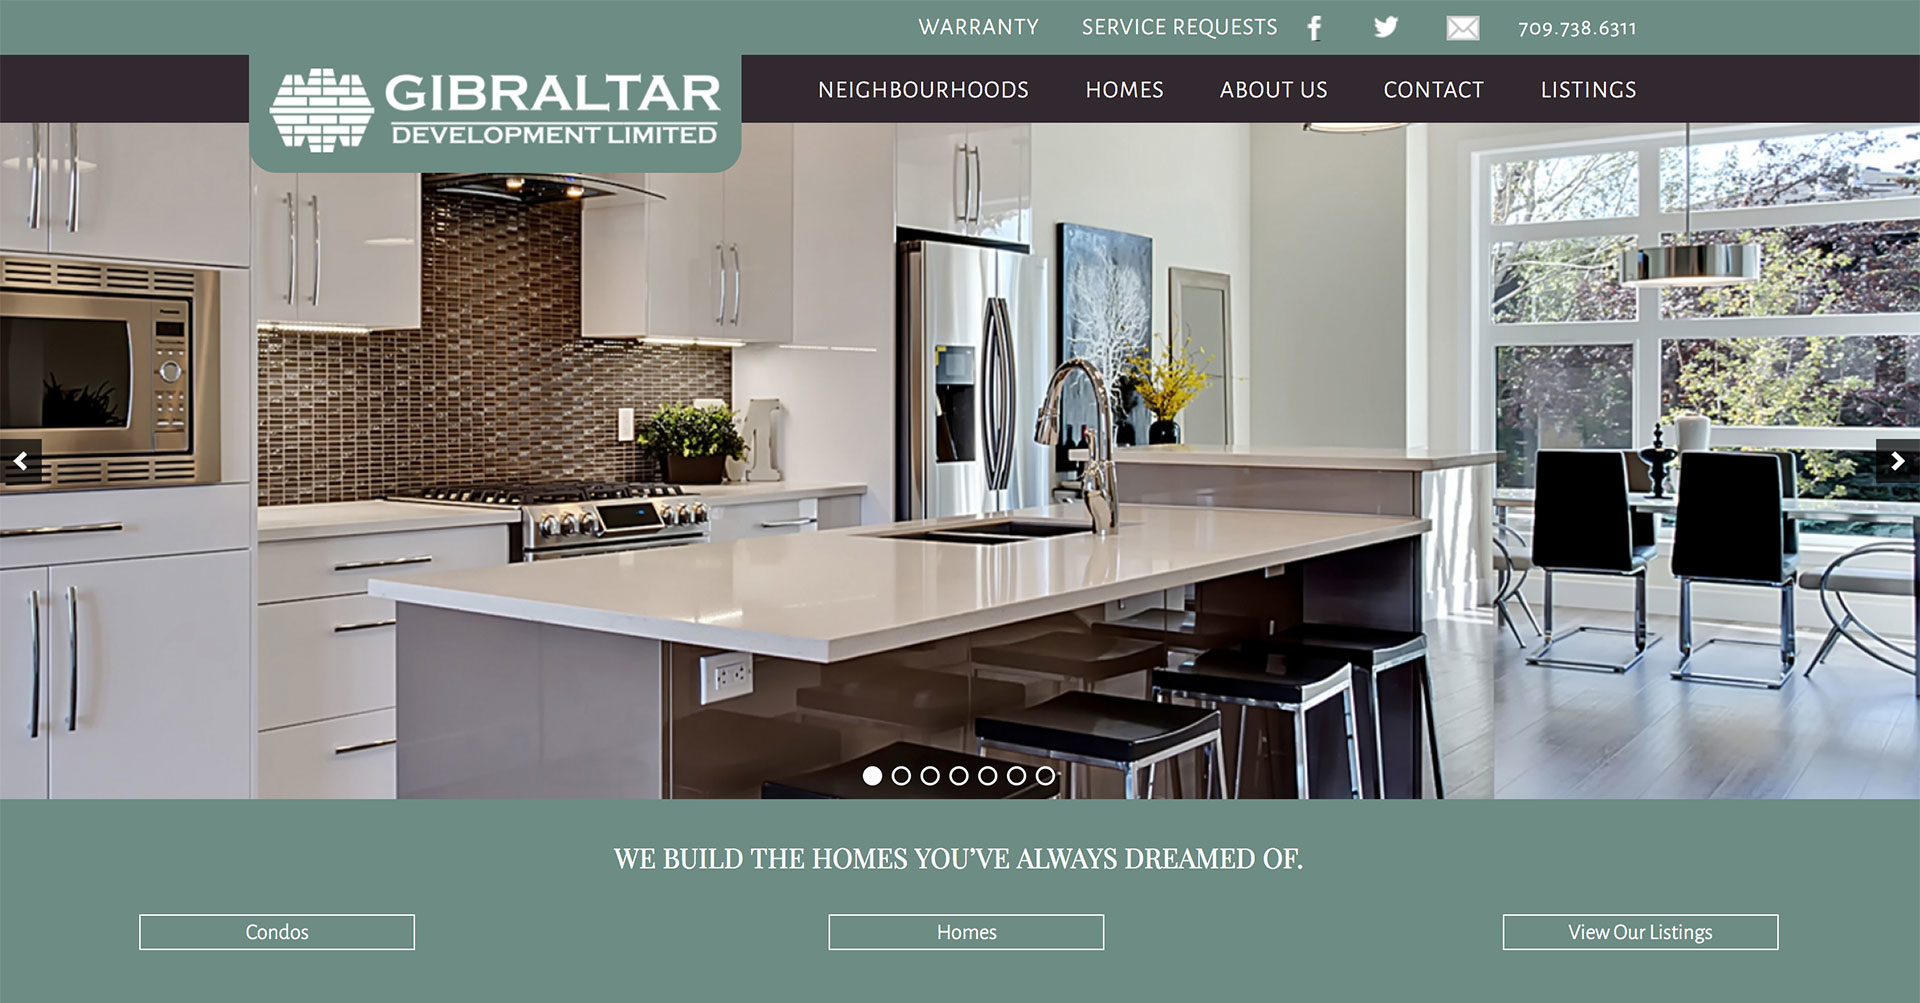 Lorne Pike & Associates in St. John's: A website design for Newfoundland and Labrador's leading condominium developer and builder of fine homes. The site highlights their quality and attention to detail.